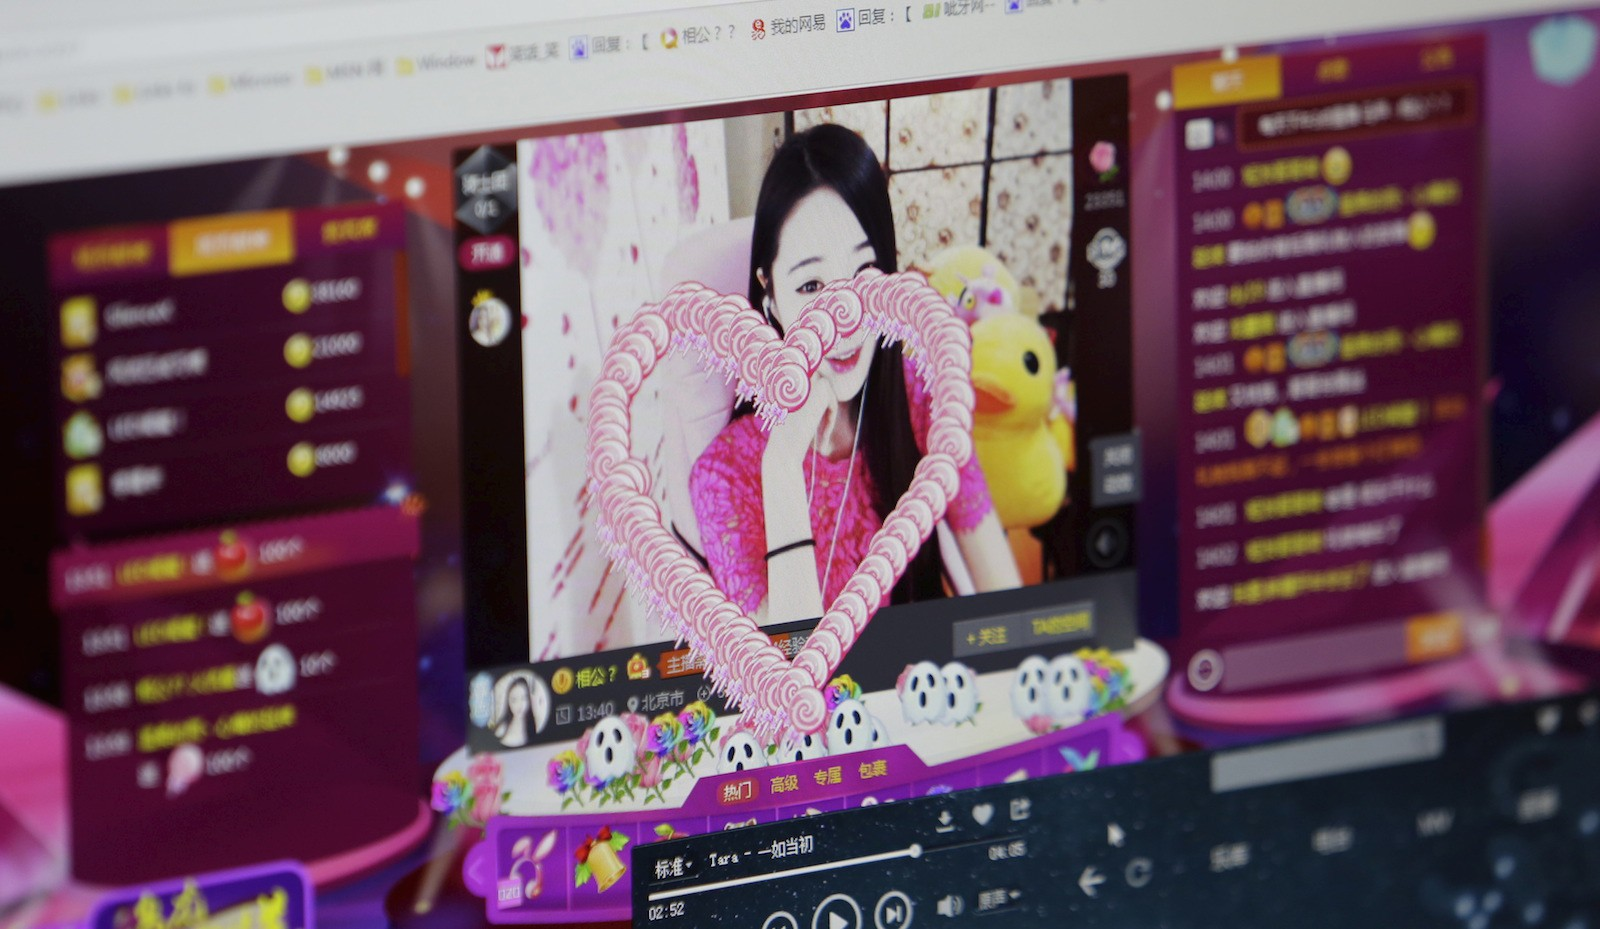 A digital gift is seen on the screen, which was bought and presented by a fan, as online hostess Xianggong gives a live broadcast in Beijing, February 10, 2015. In China's online hostessing world, men find virtual company and the women can find riches. Xianggong is one of more than 10,000 hostesses on the internet site bobo.com, a live broadcasting web platform where anyone can record themselves singing, playing piano, dancing or just chatting. REUTERS/Jason Lee   PICTURE 3 OF 27 FOR WIDER IMAGE STORY ëCHINAíS ONLINE HOSTESSESí  SEARCH 'XIANGGONGí FOR ALL IMAGES   - RTR4XJHT